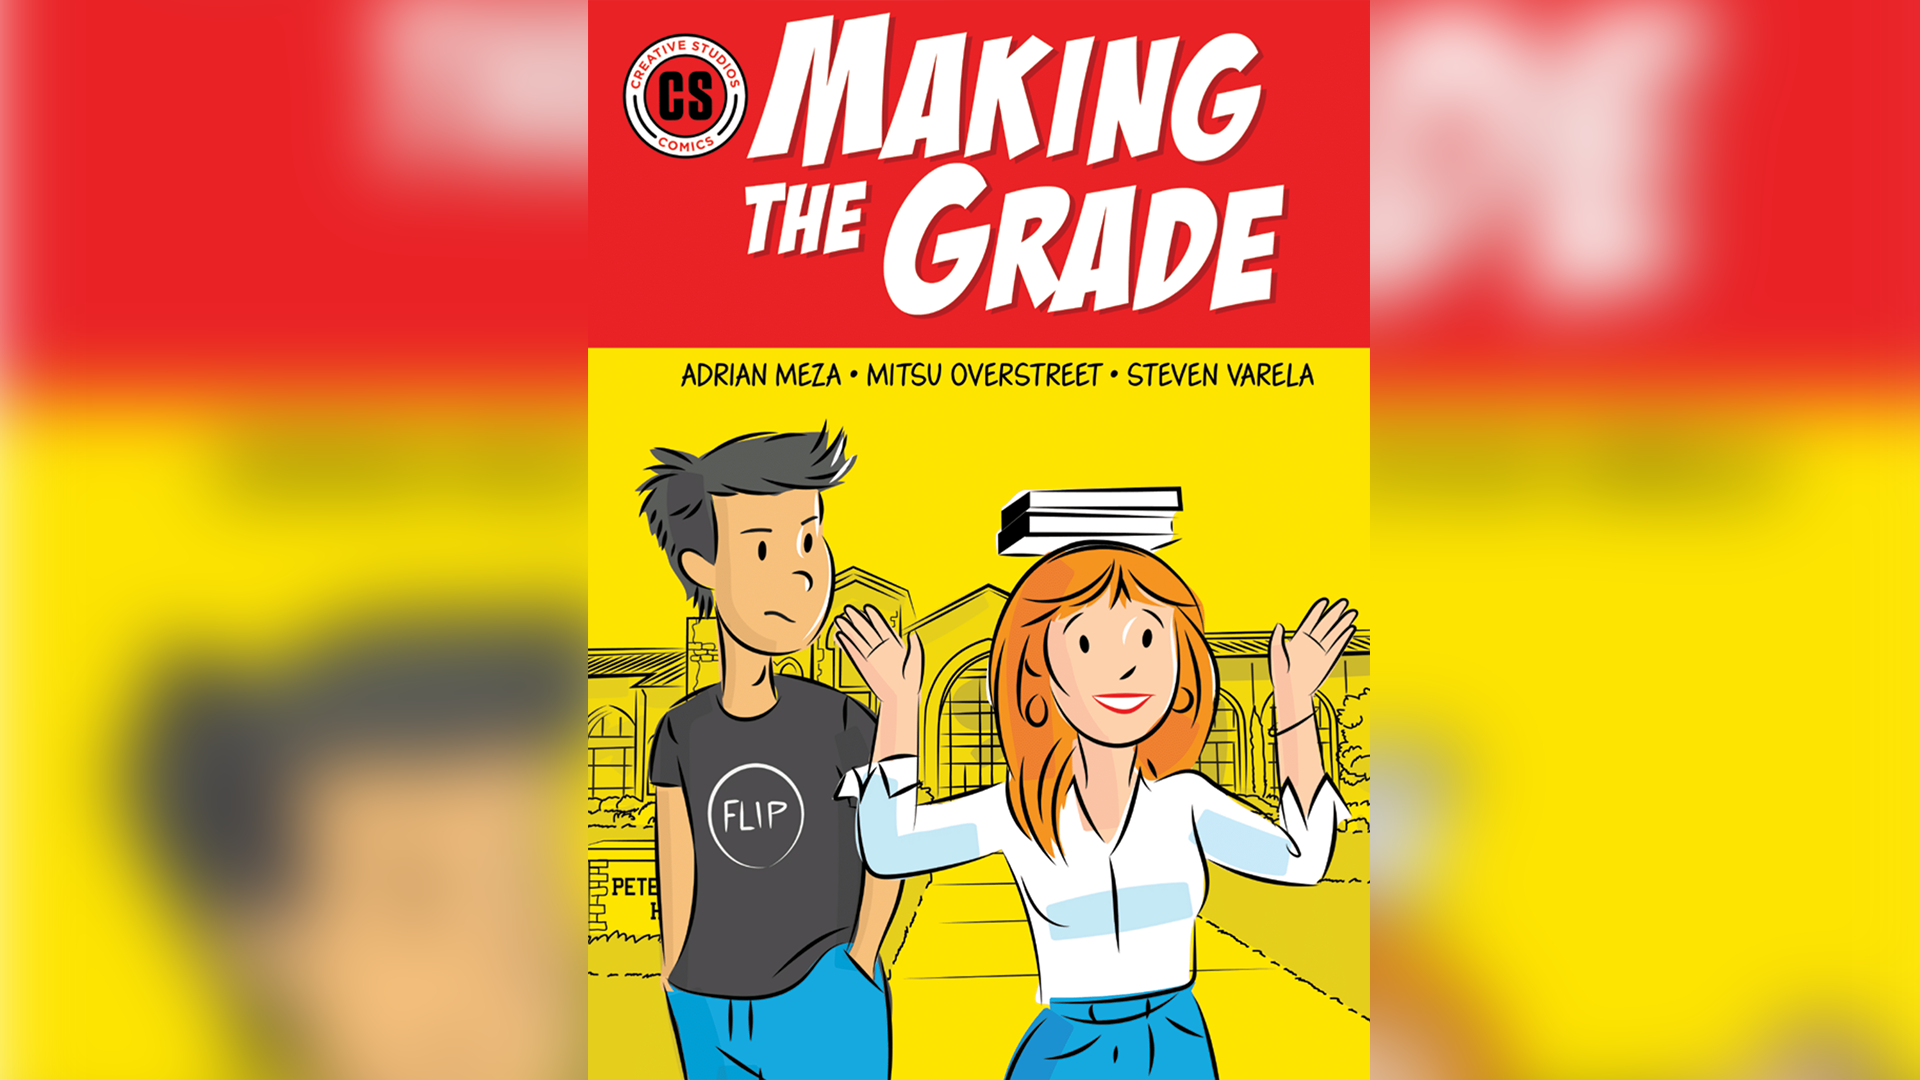 Making the Grade  is an educational comic I wrote as part of a larger update to Integrating Ethics: From Thought to Action. An update focused on academic integrity, this comic features a storyline that emphasizes the ethics and decision-making in a high-school environment. The ultimate goal is to help students engage with their own ethics and develop their value system. Please click  here  to learn more about the update and to download the comic.